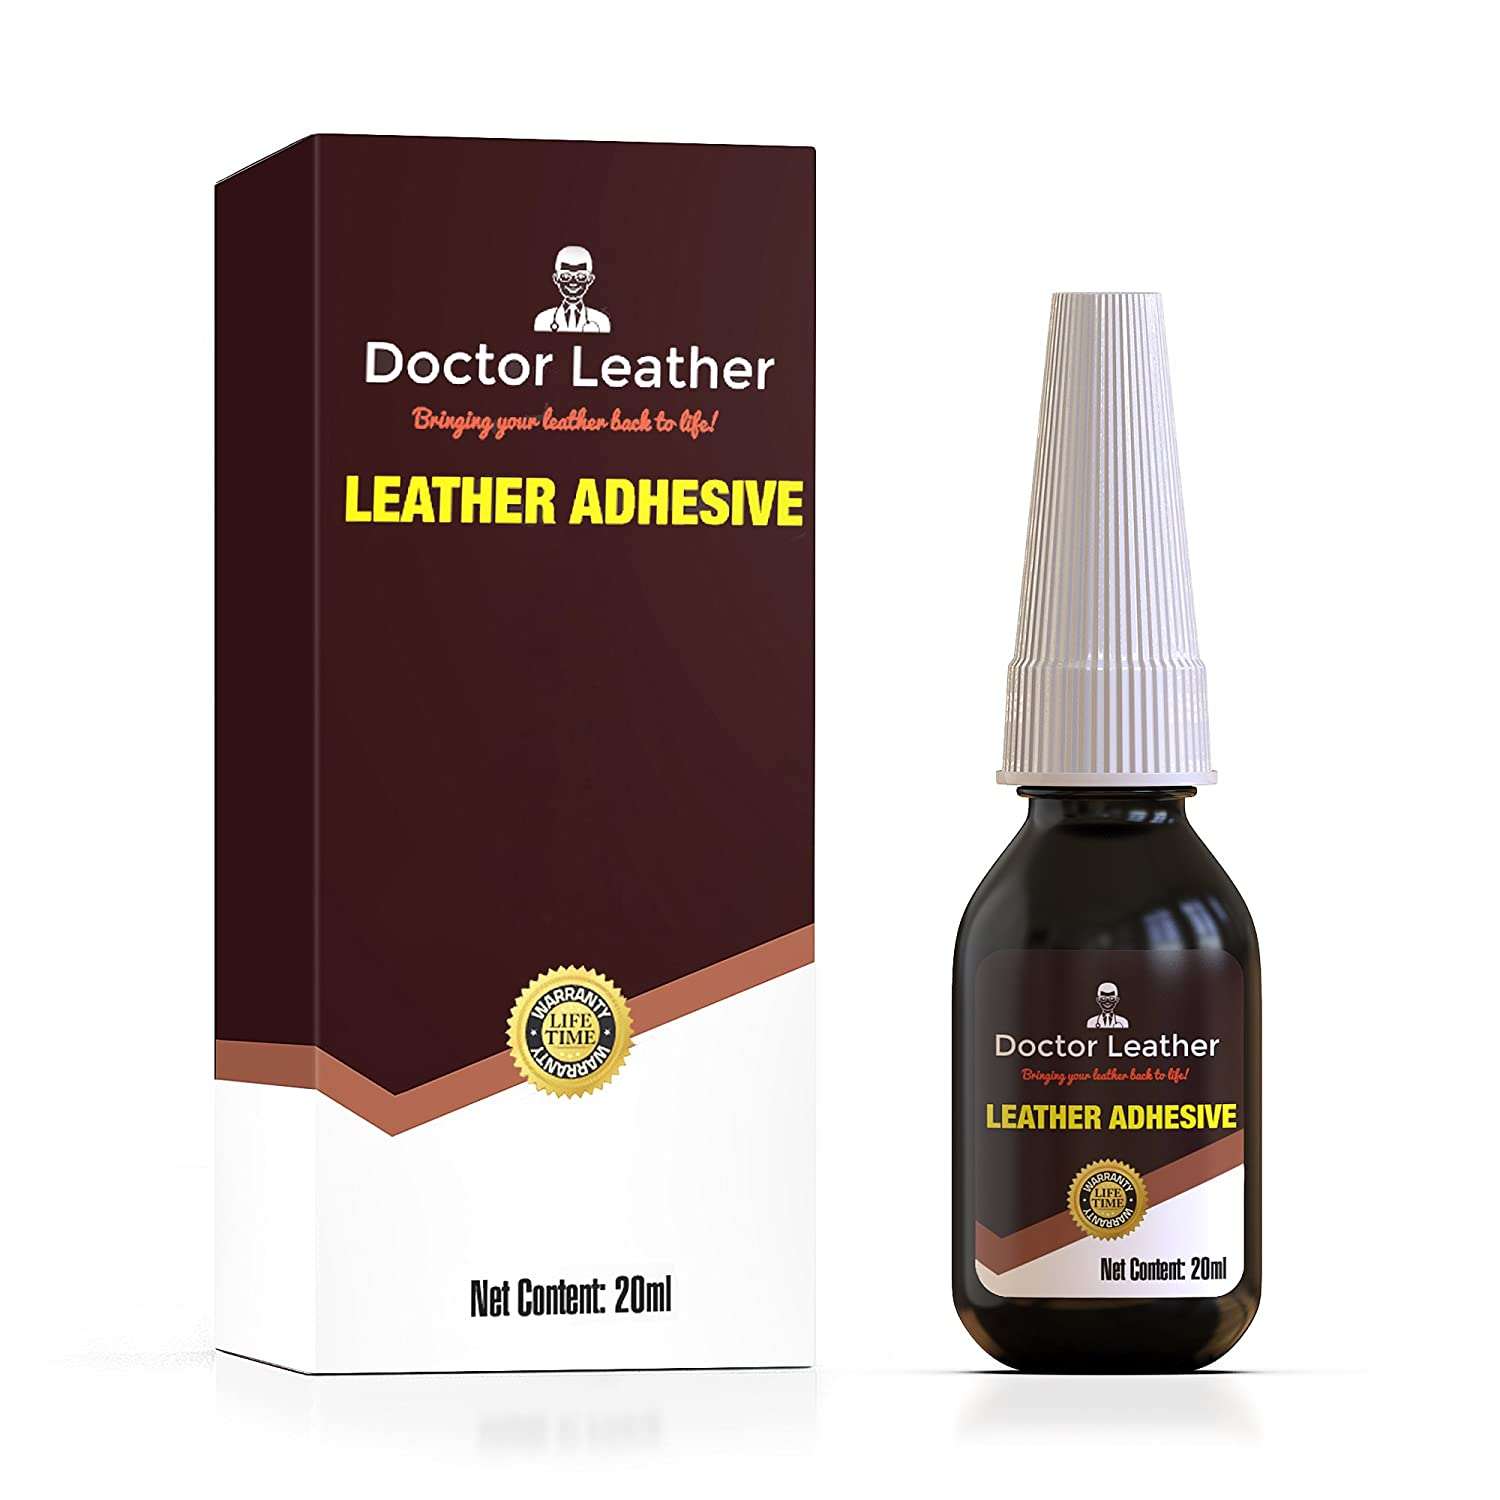 Doctor Leather | Two Pack of Leather, Vinyl and Fabric Adhesive | Non Toxic and Dries Clear | Instant Drying Latex Based Glue | 0.7fl oz per Bottle